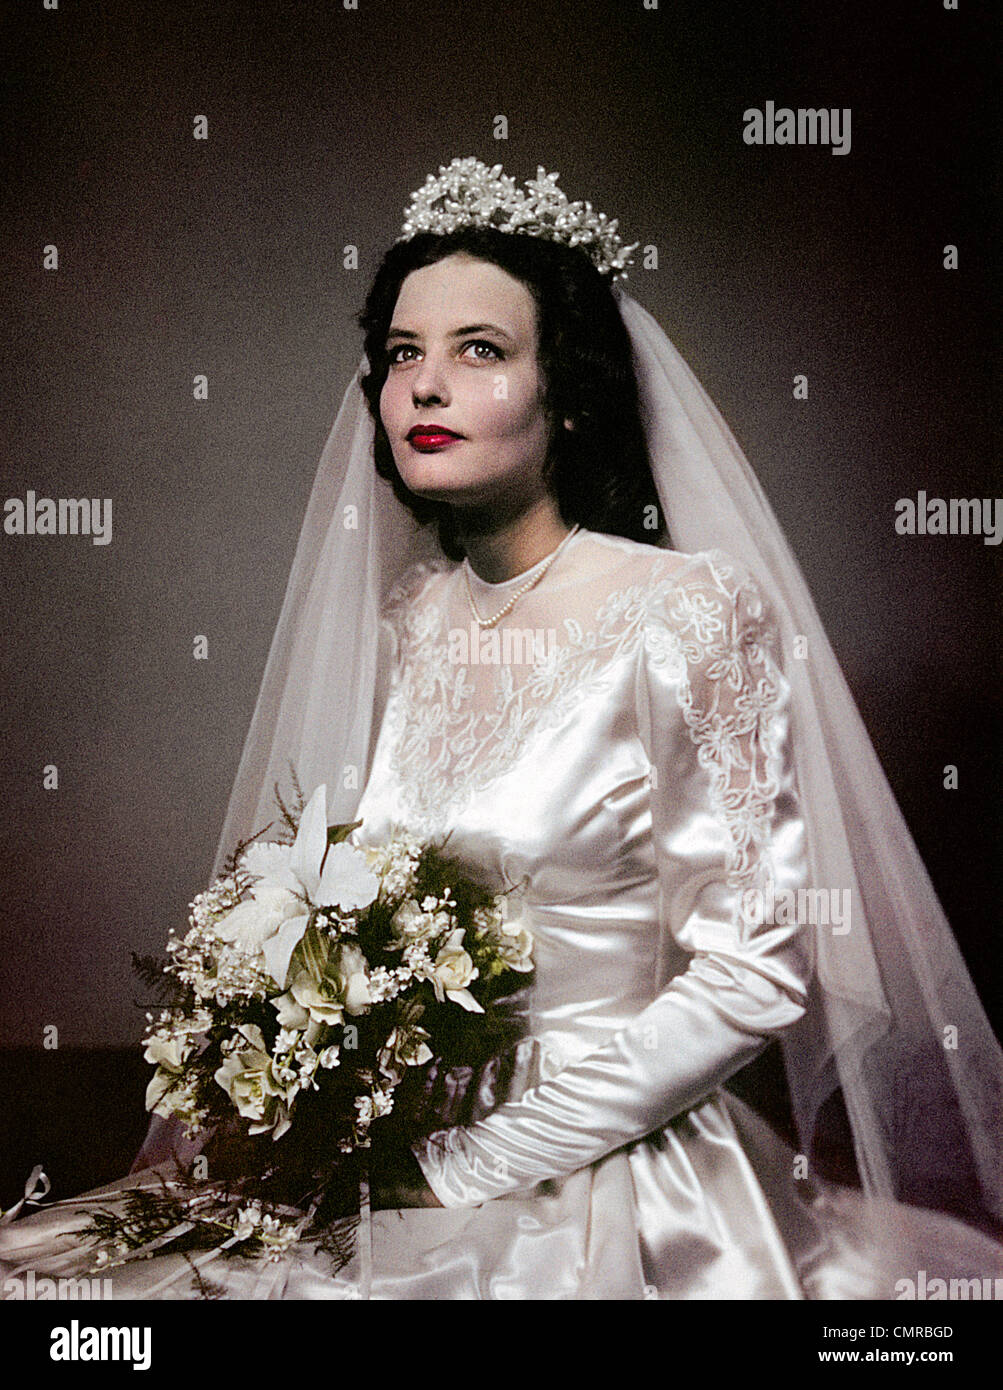 1940s 1950s Portrait Brunette Bride In Bridal Gown With